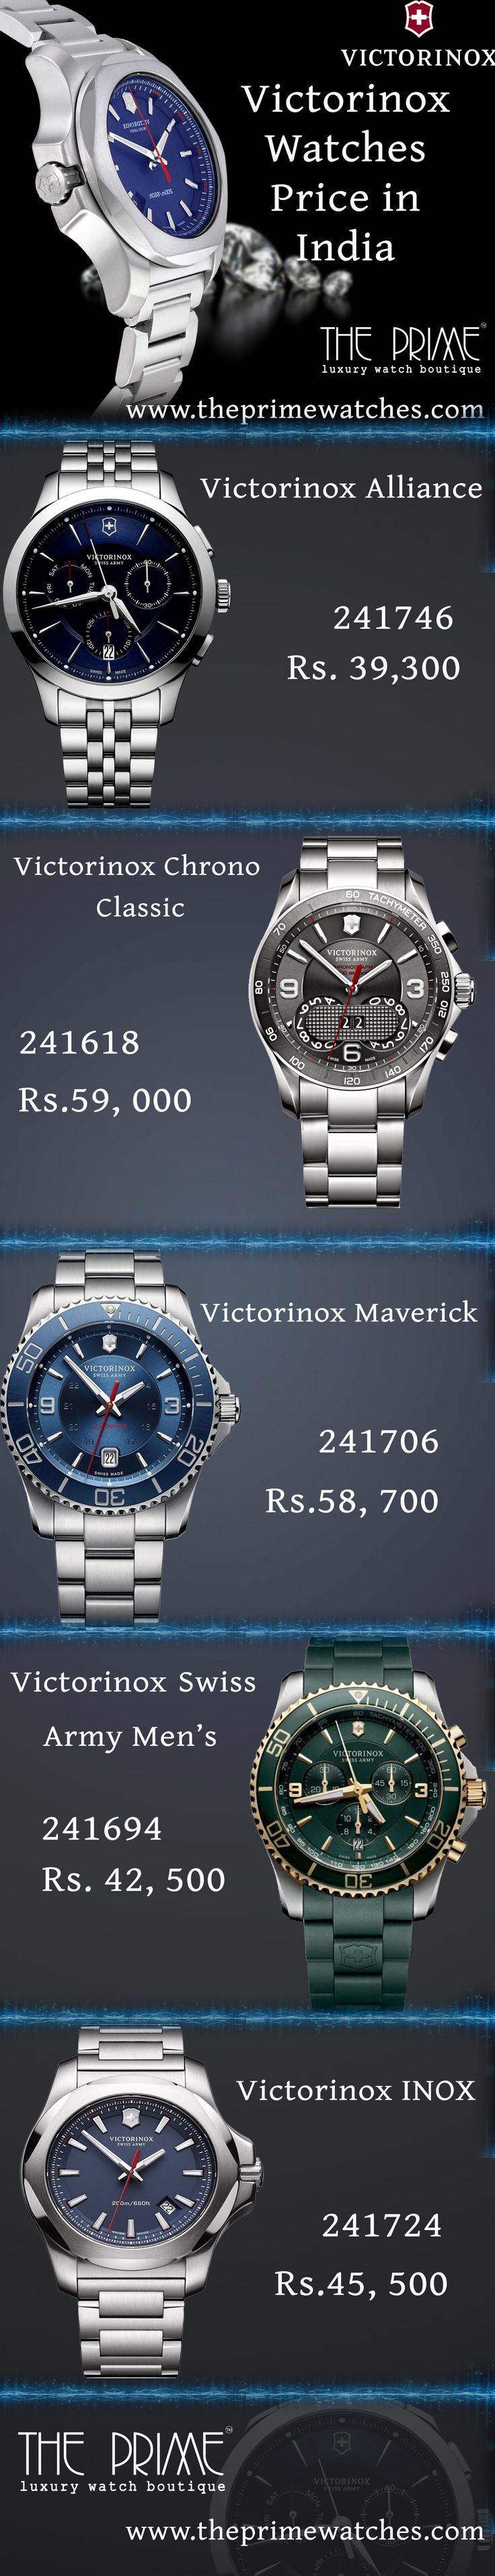 Victorinox watches are one of the popular ones among the Indian people for their cutting-edge designs and good looks. Some mind-blowing pieces from the brand with their price are given below.